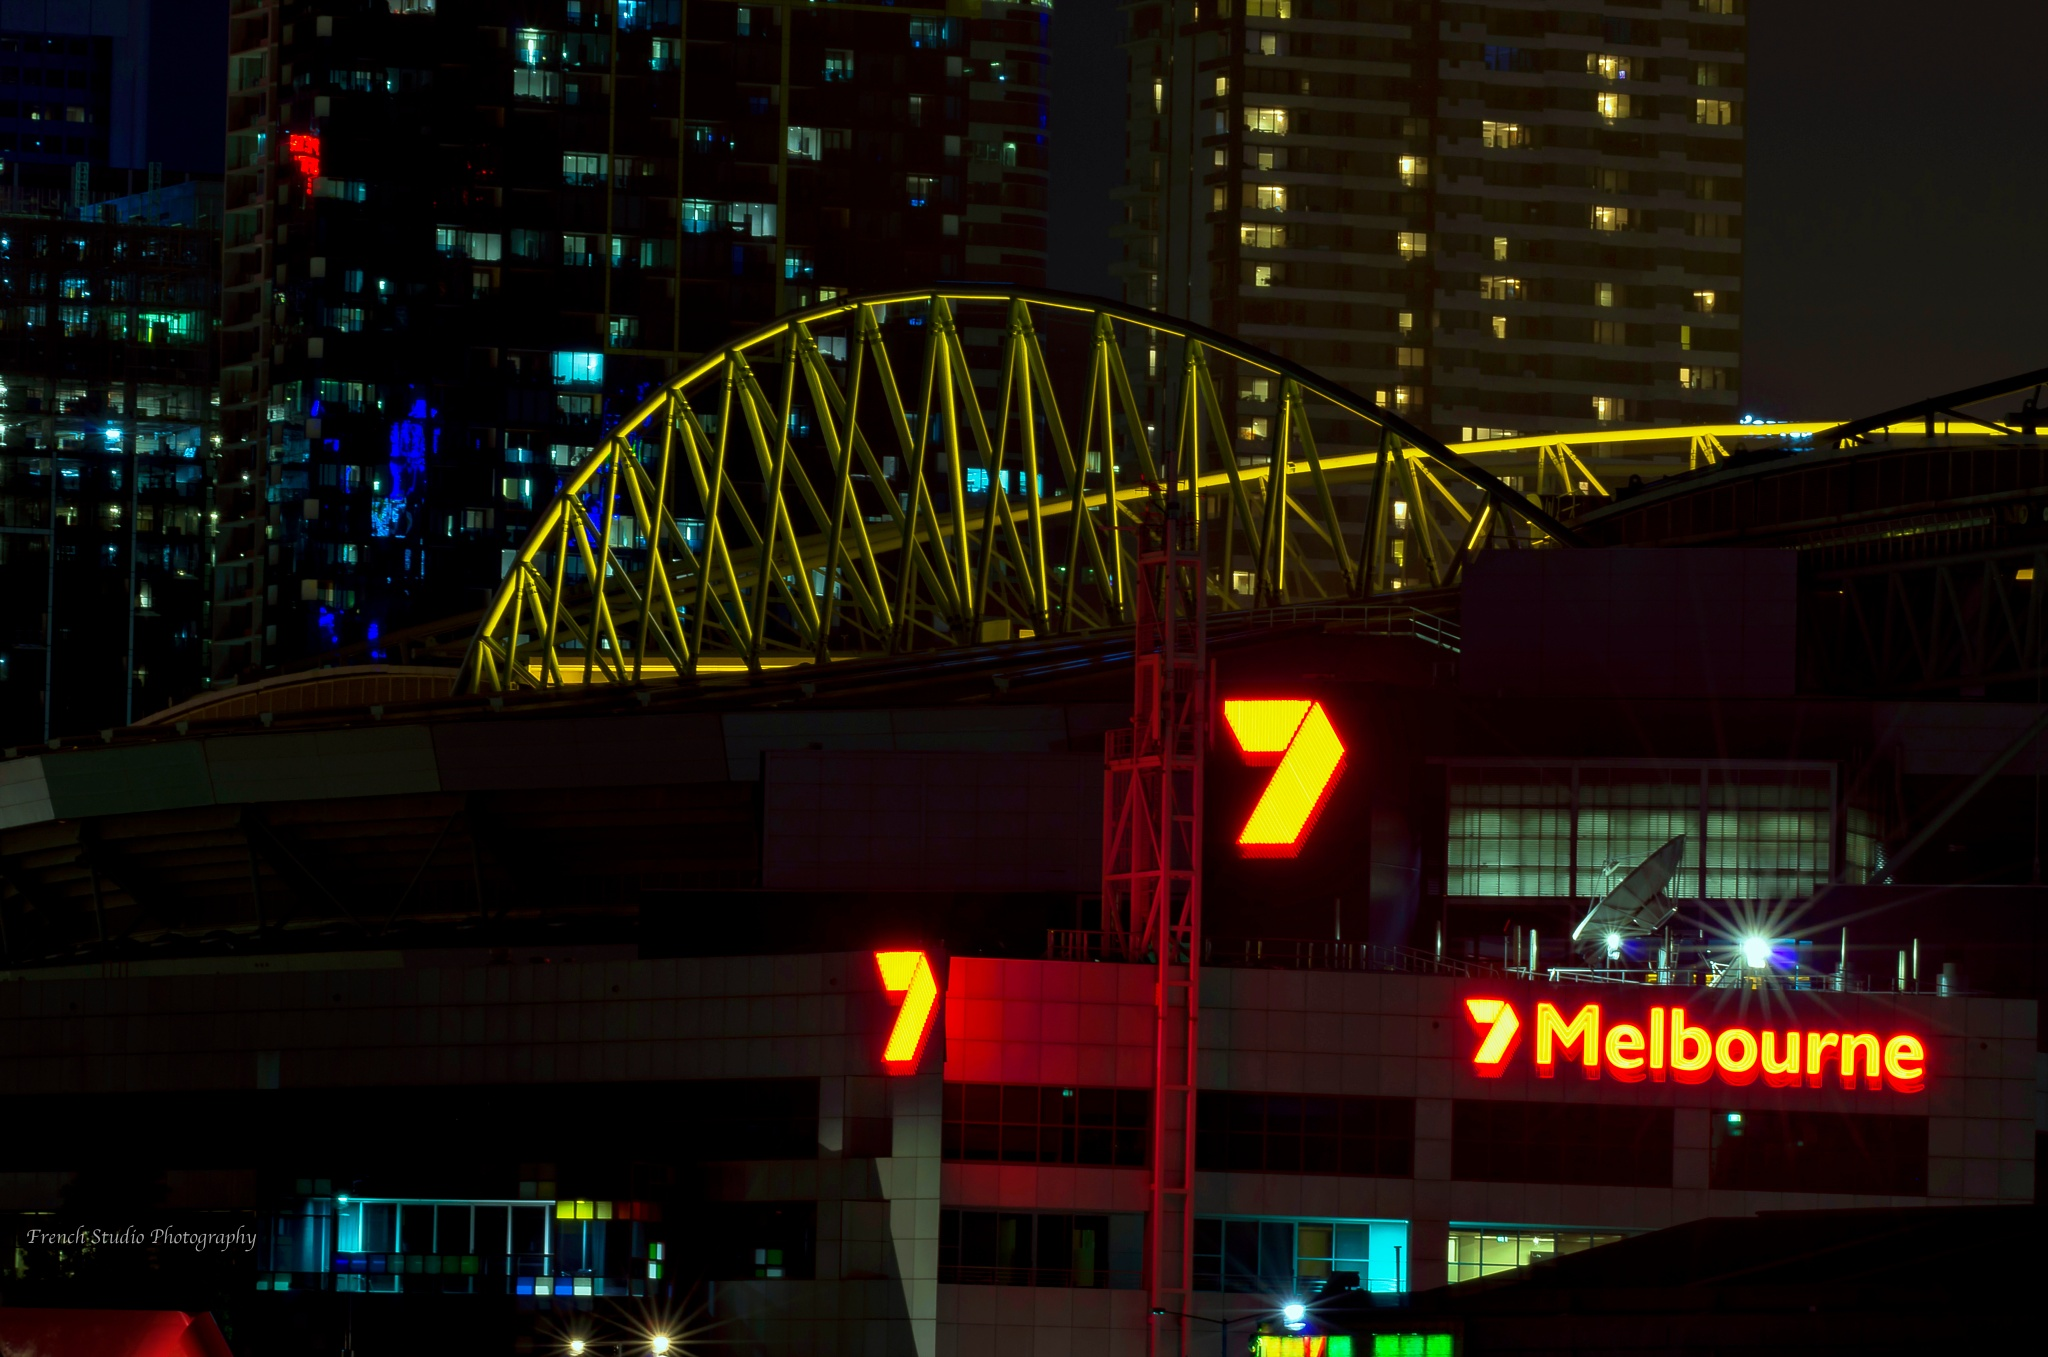 Television channel 7 Melbourne by gerardrotse